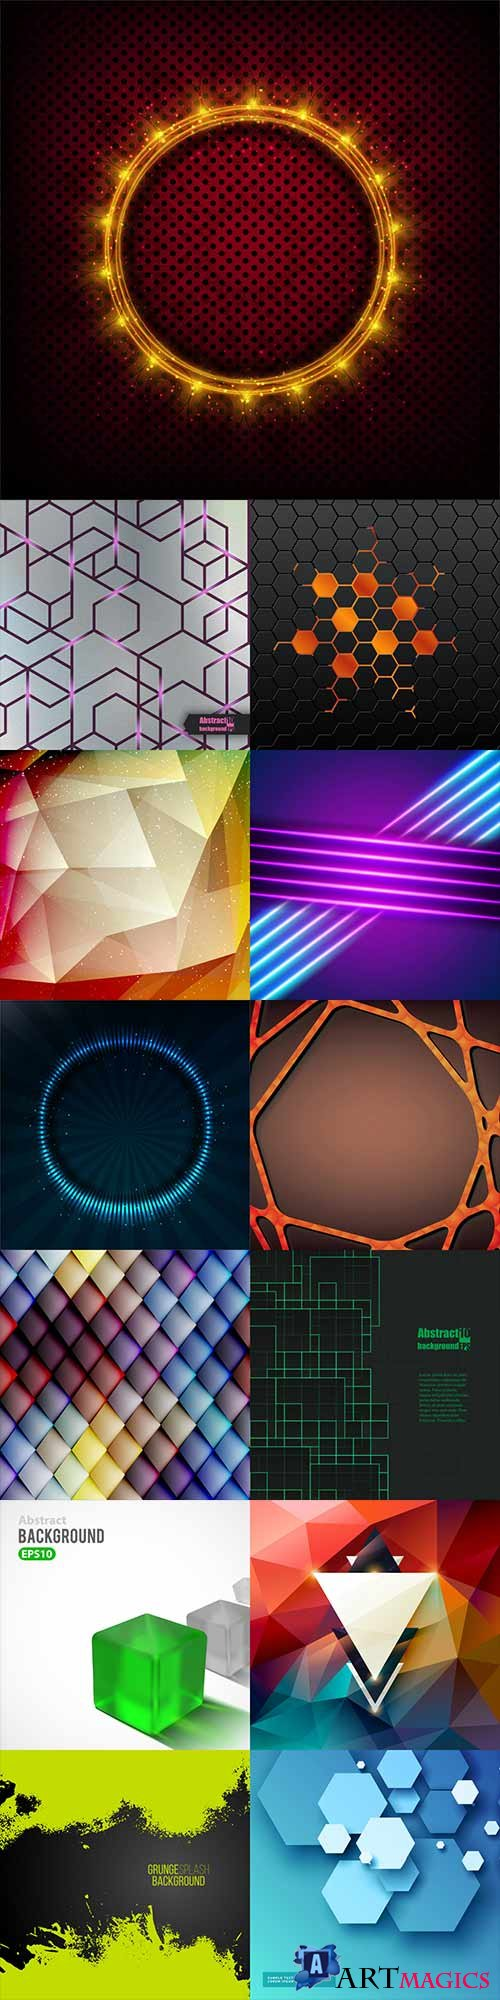 Bright colorful abstract backgrounds vector - 79